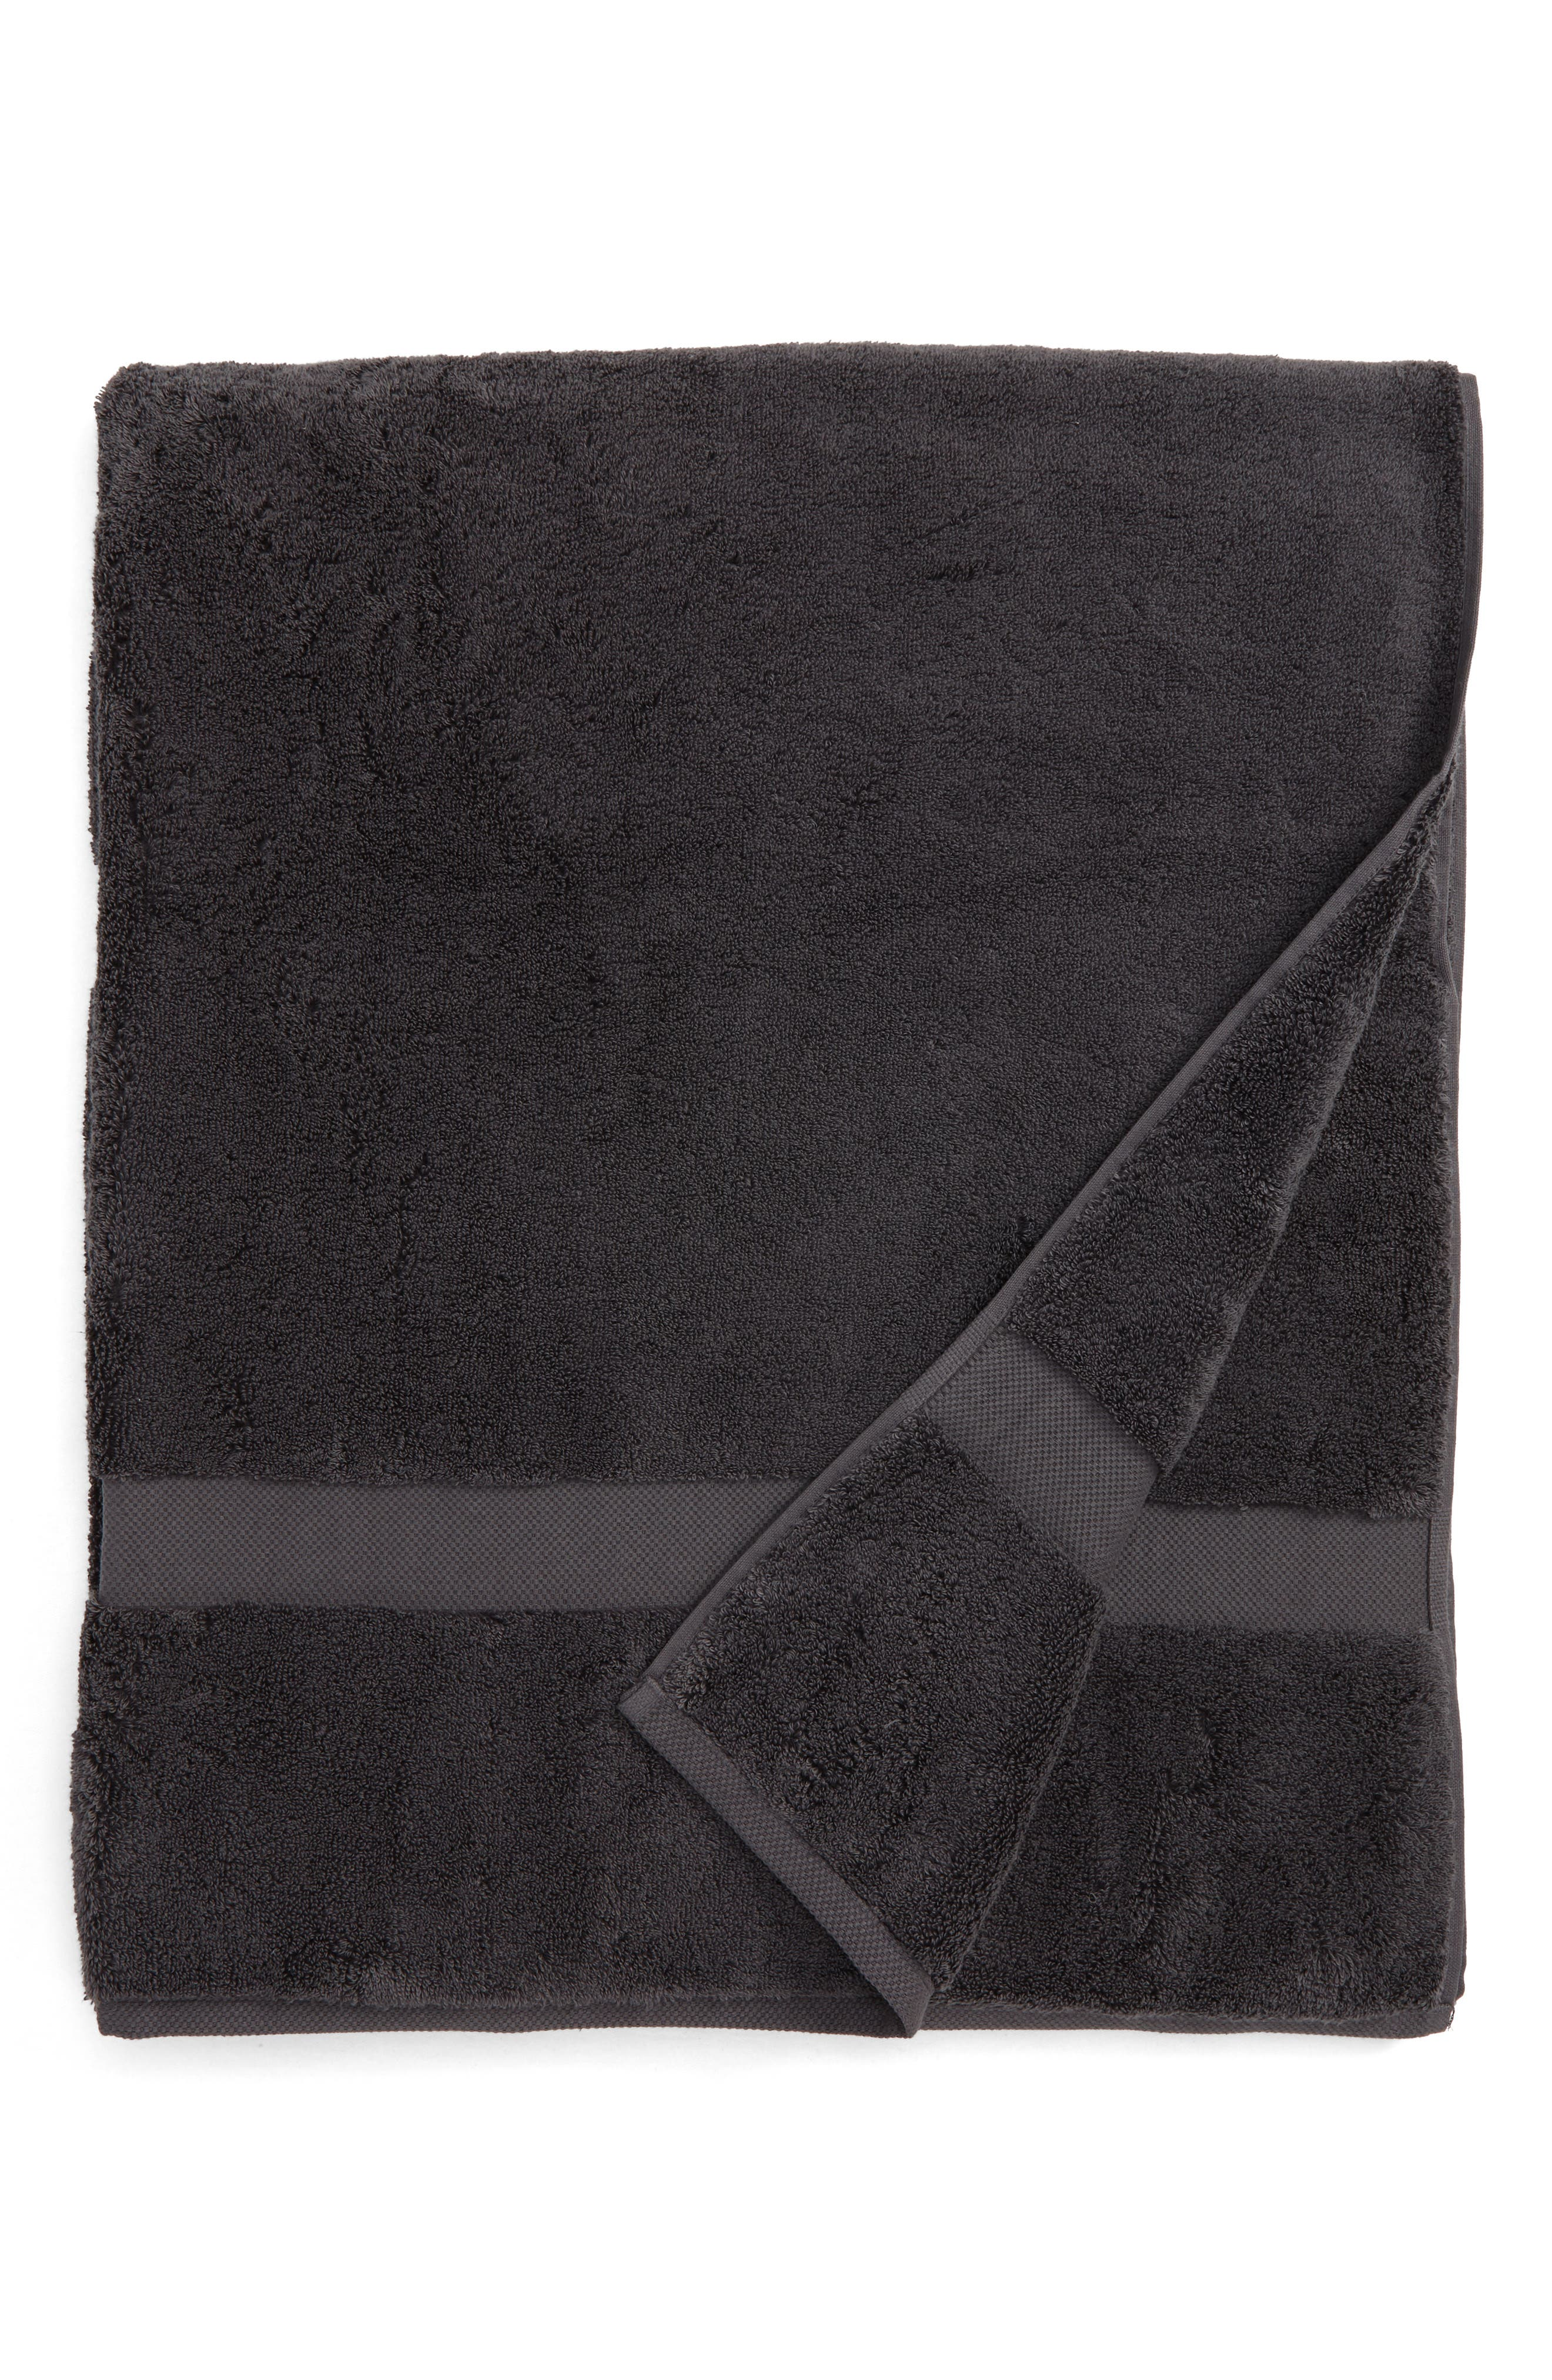 Lotus Bath Sheet,                             Main thumbnail 1, color,                             CHARCOAL